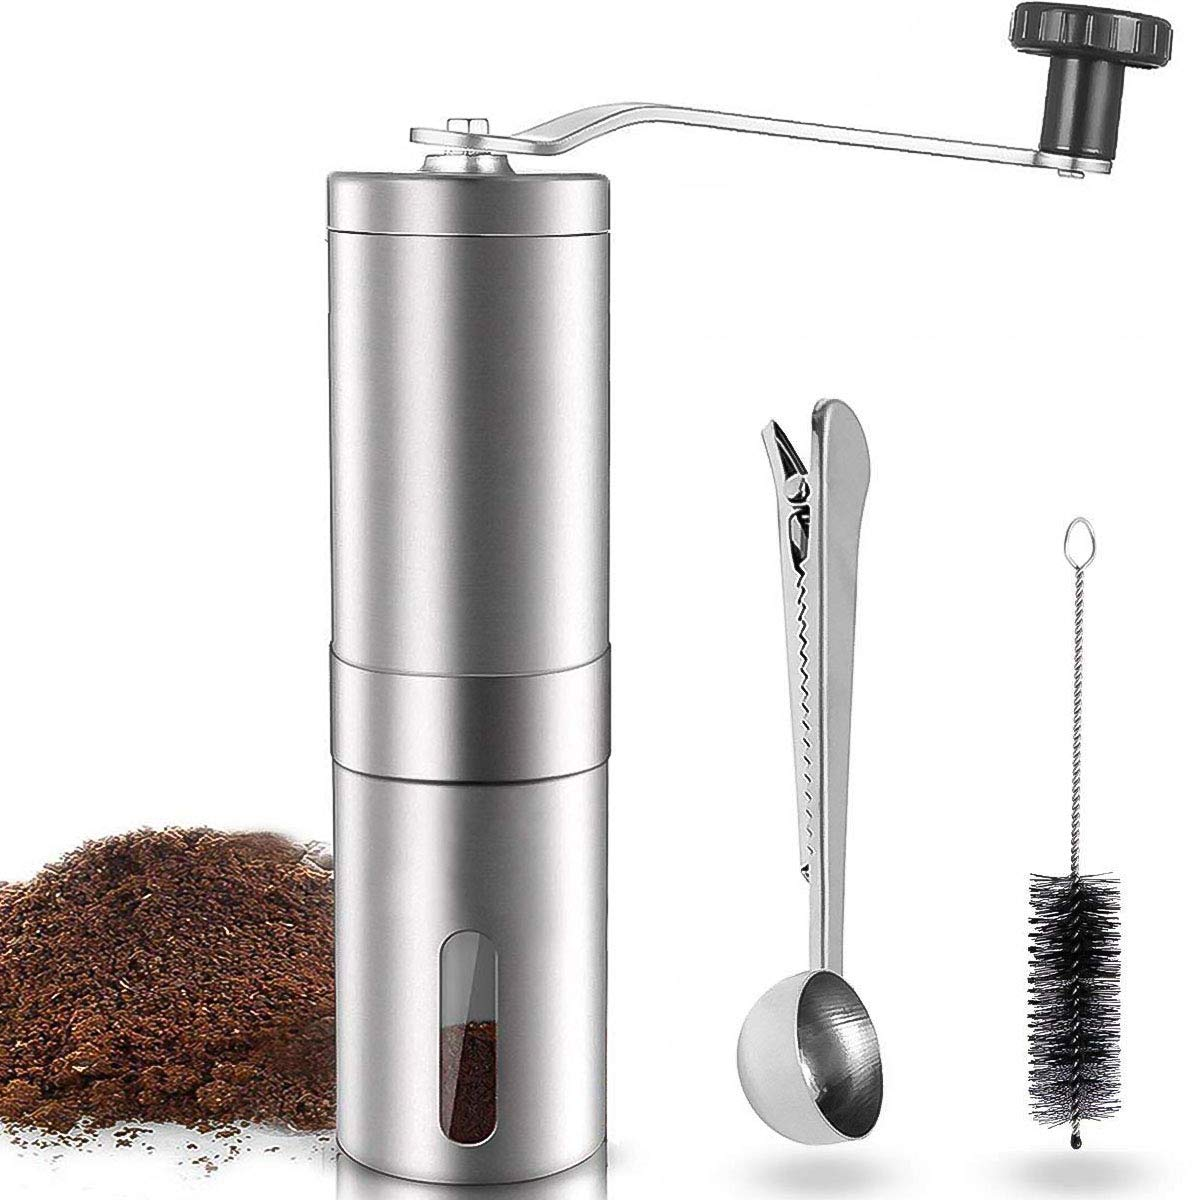 Manual Coffee Grinder, LHS Adjustable Ceramic Conical Burr Brushed Stainless Steel Coffee Beans Manual Grinder Portable Travel and Handheld Mini Coffee Mill with Spoon & Clean Brush